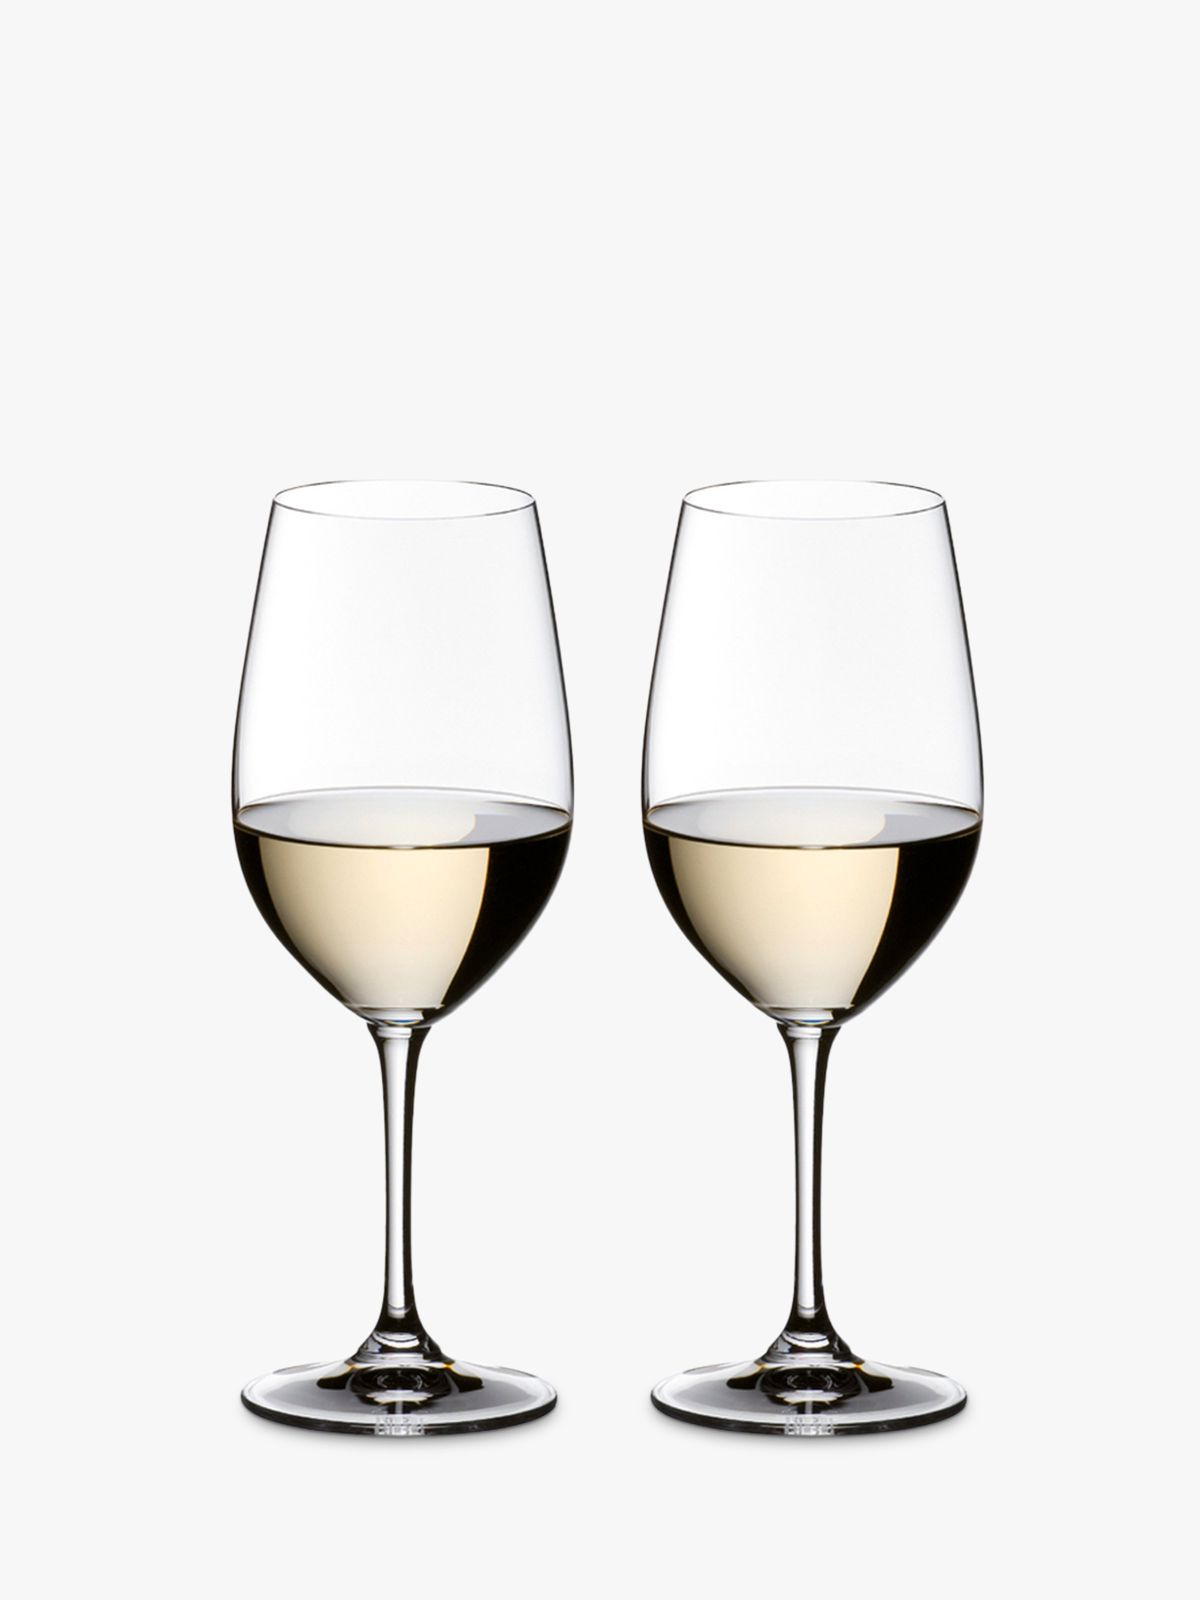 Riedel Riedel Vinum Chianti / Riesling Glasses, Set of 2